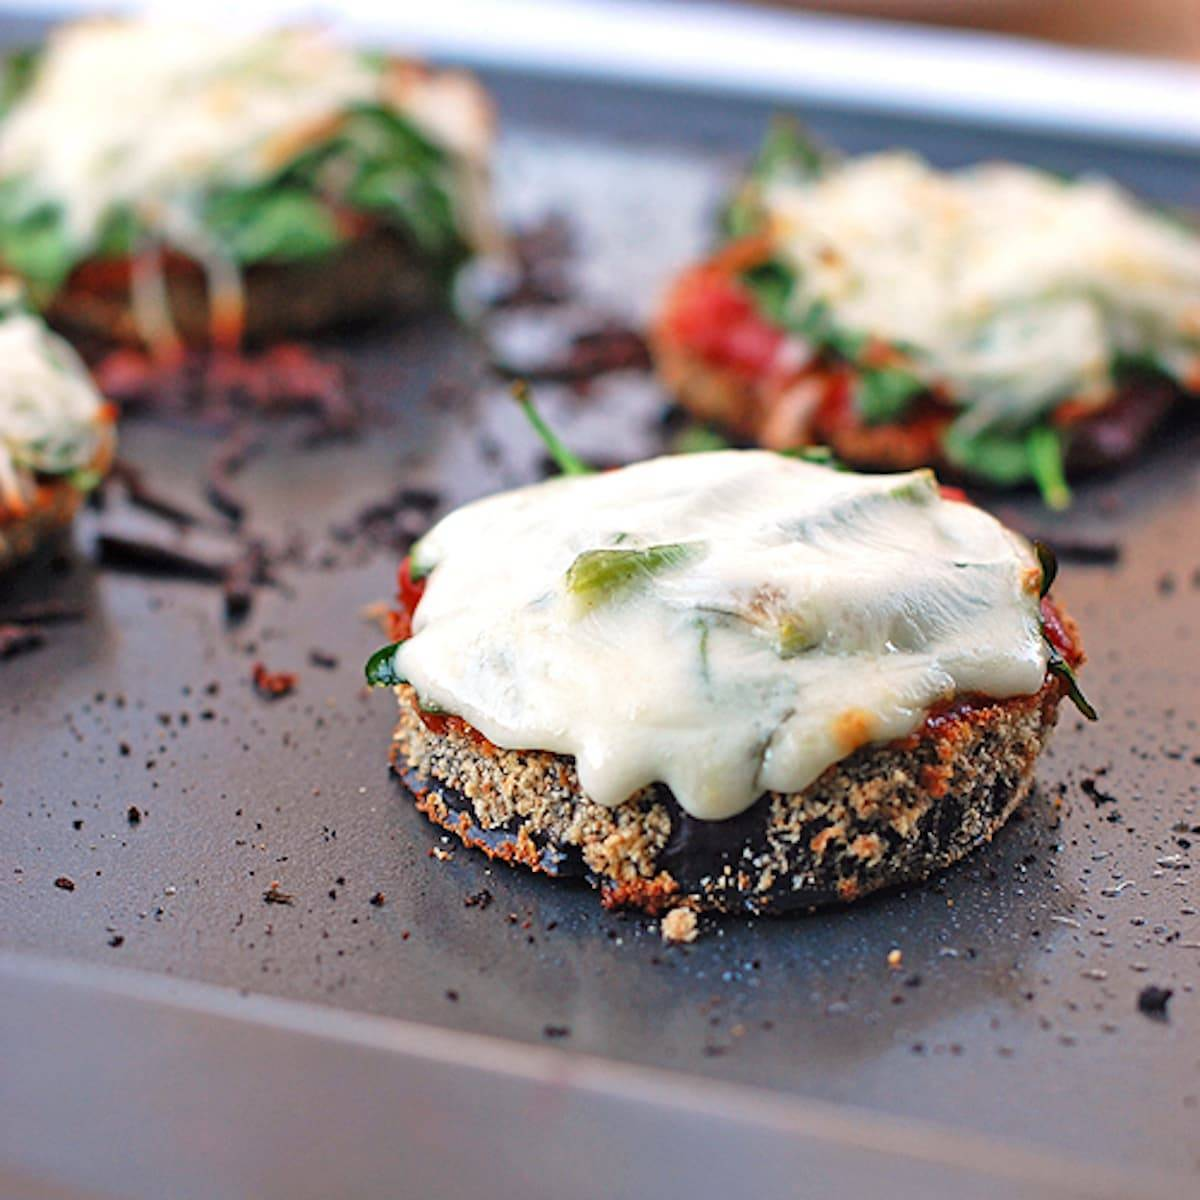 These little eggplant pizzas are baked slices of breaded eggplant topped with marinara and melted cheese. Simple, healthy, delicious! | pinchofyum.com